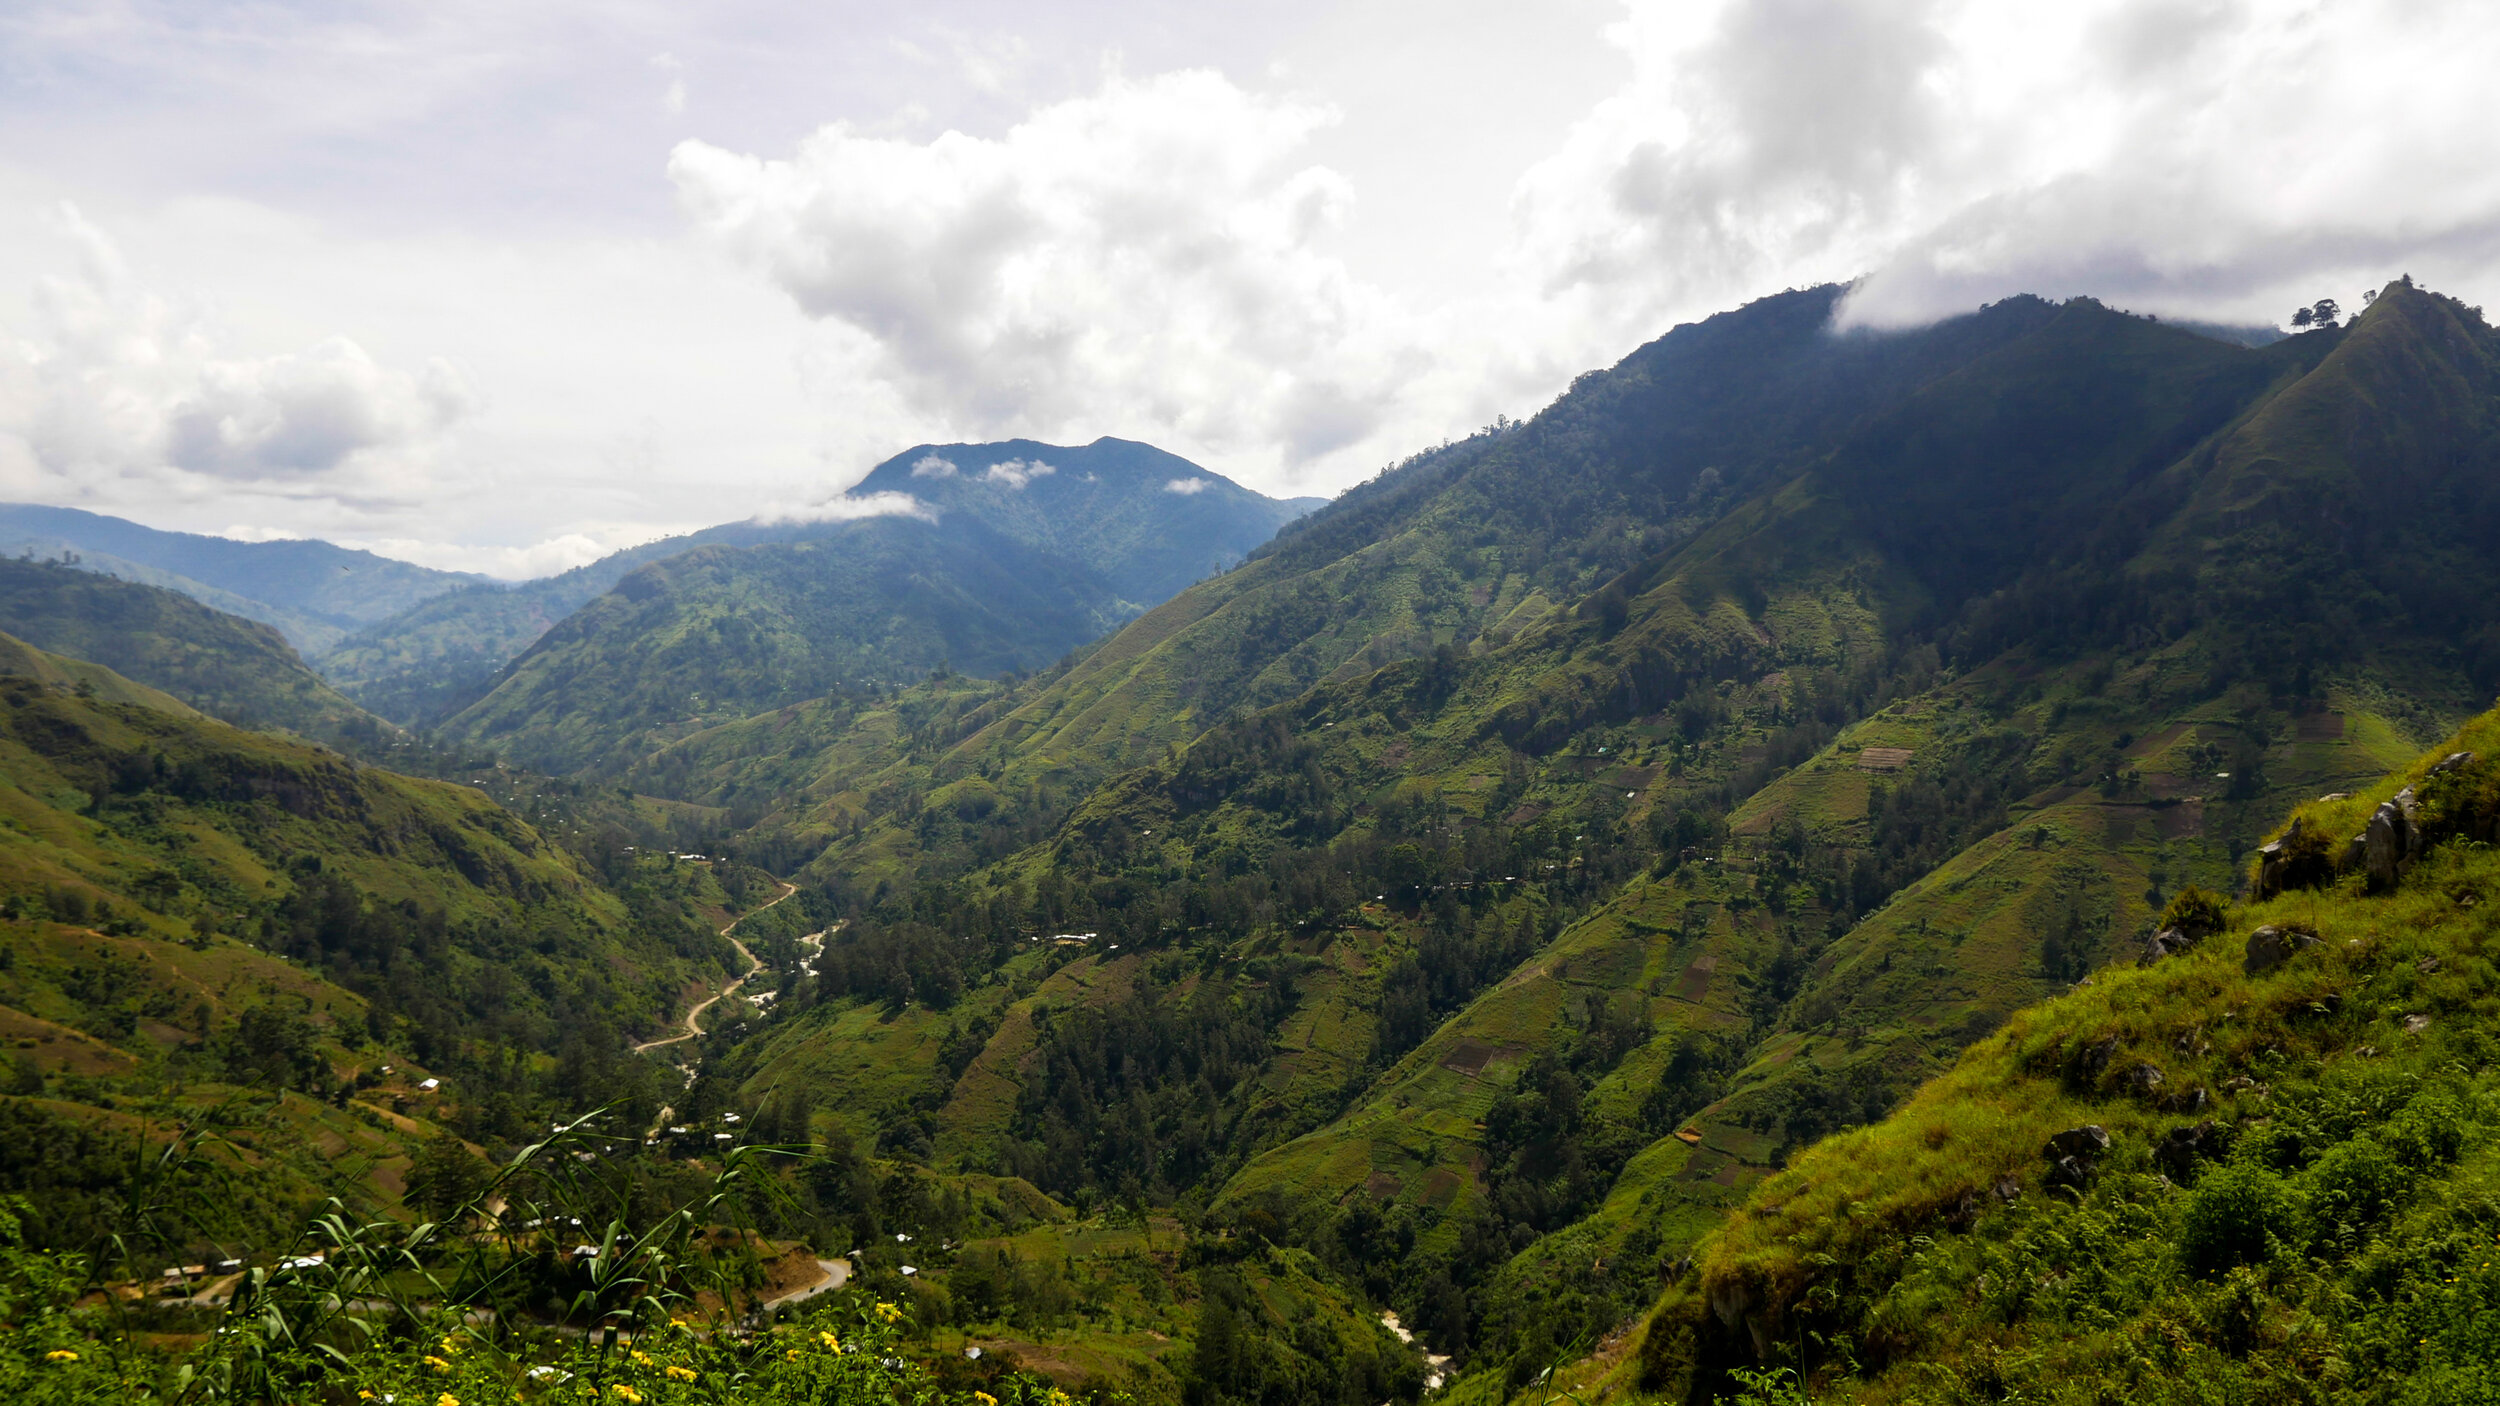 Papua New Guinea's highlands are dramatic and staggeringly beautiful, but present difficult terrain to cover in a wheelchair.